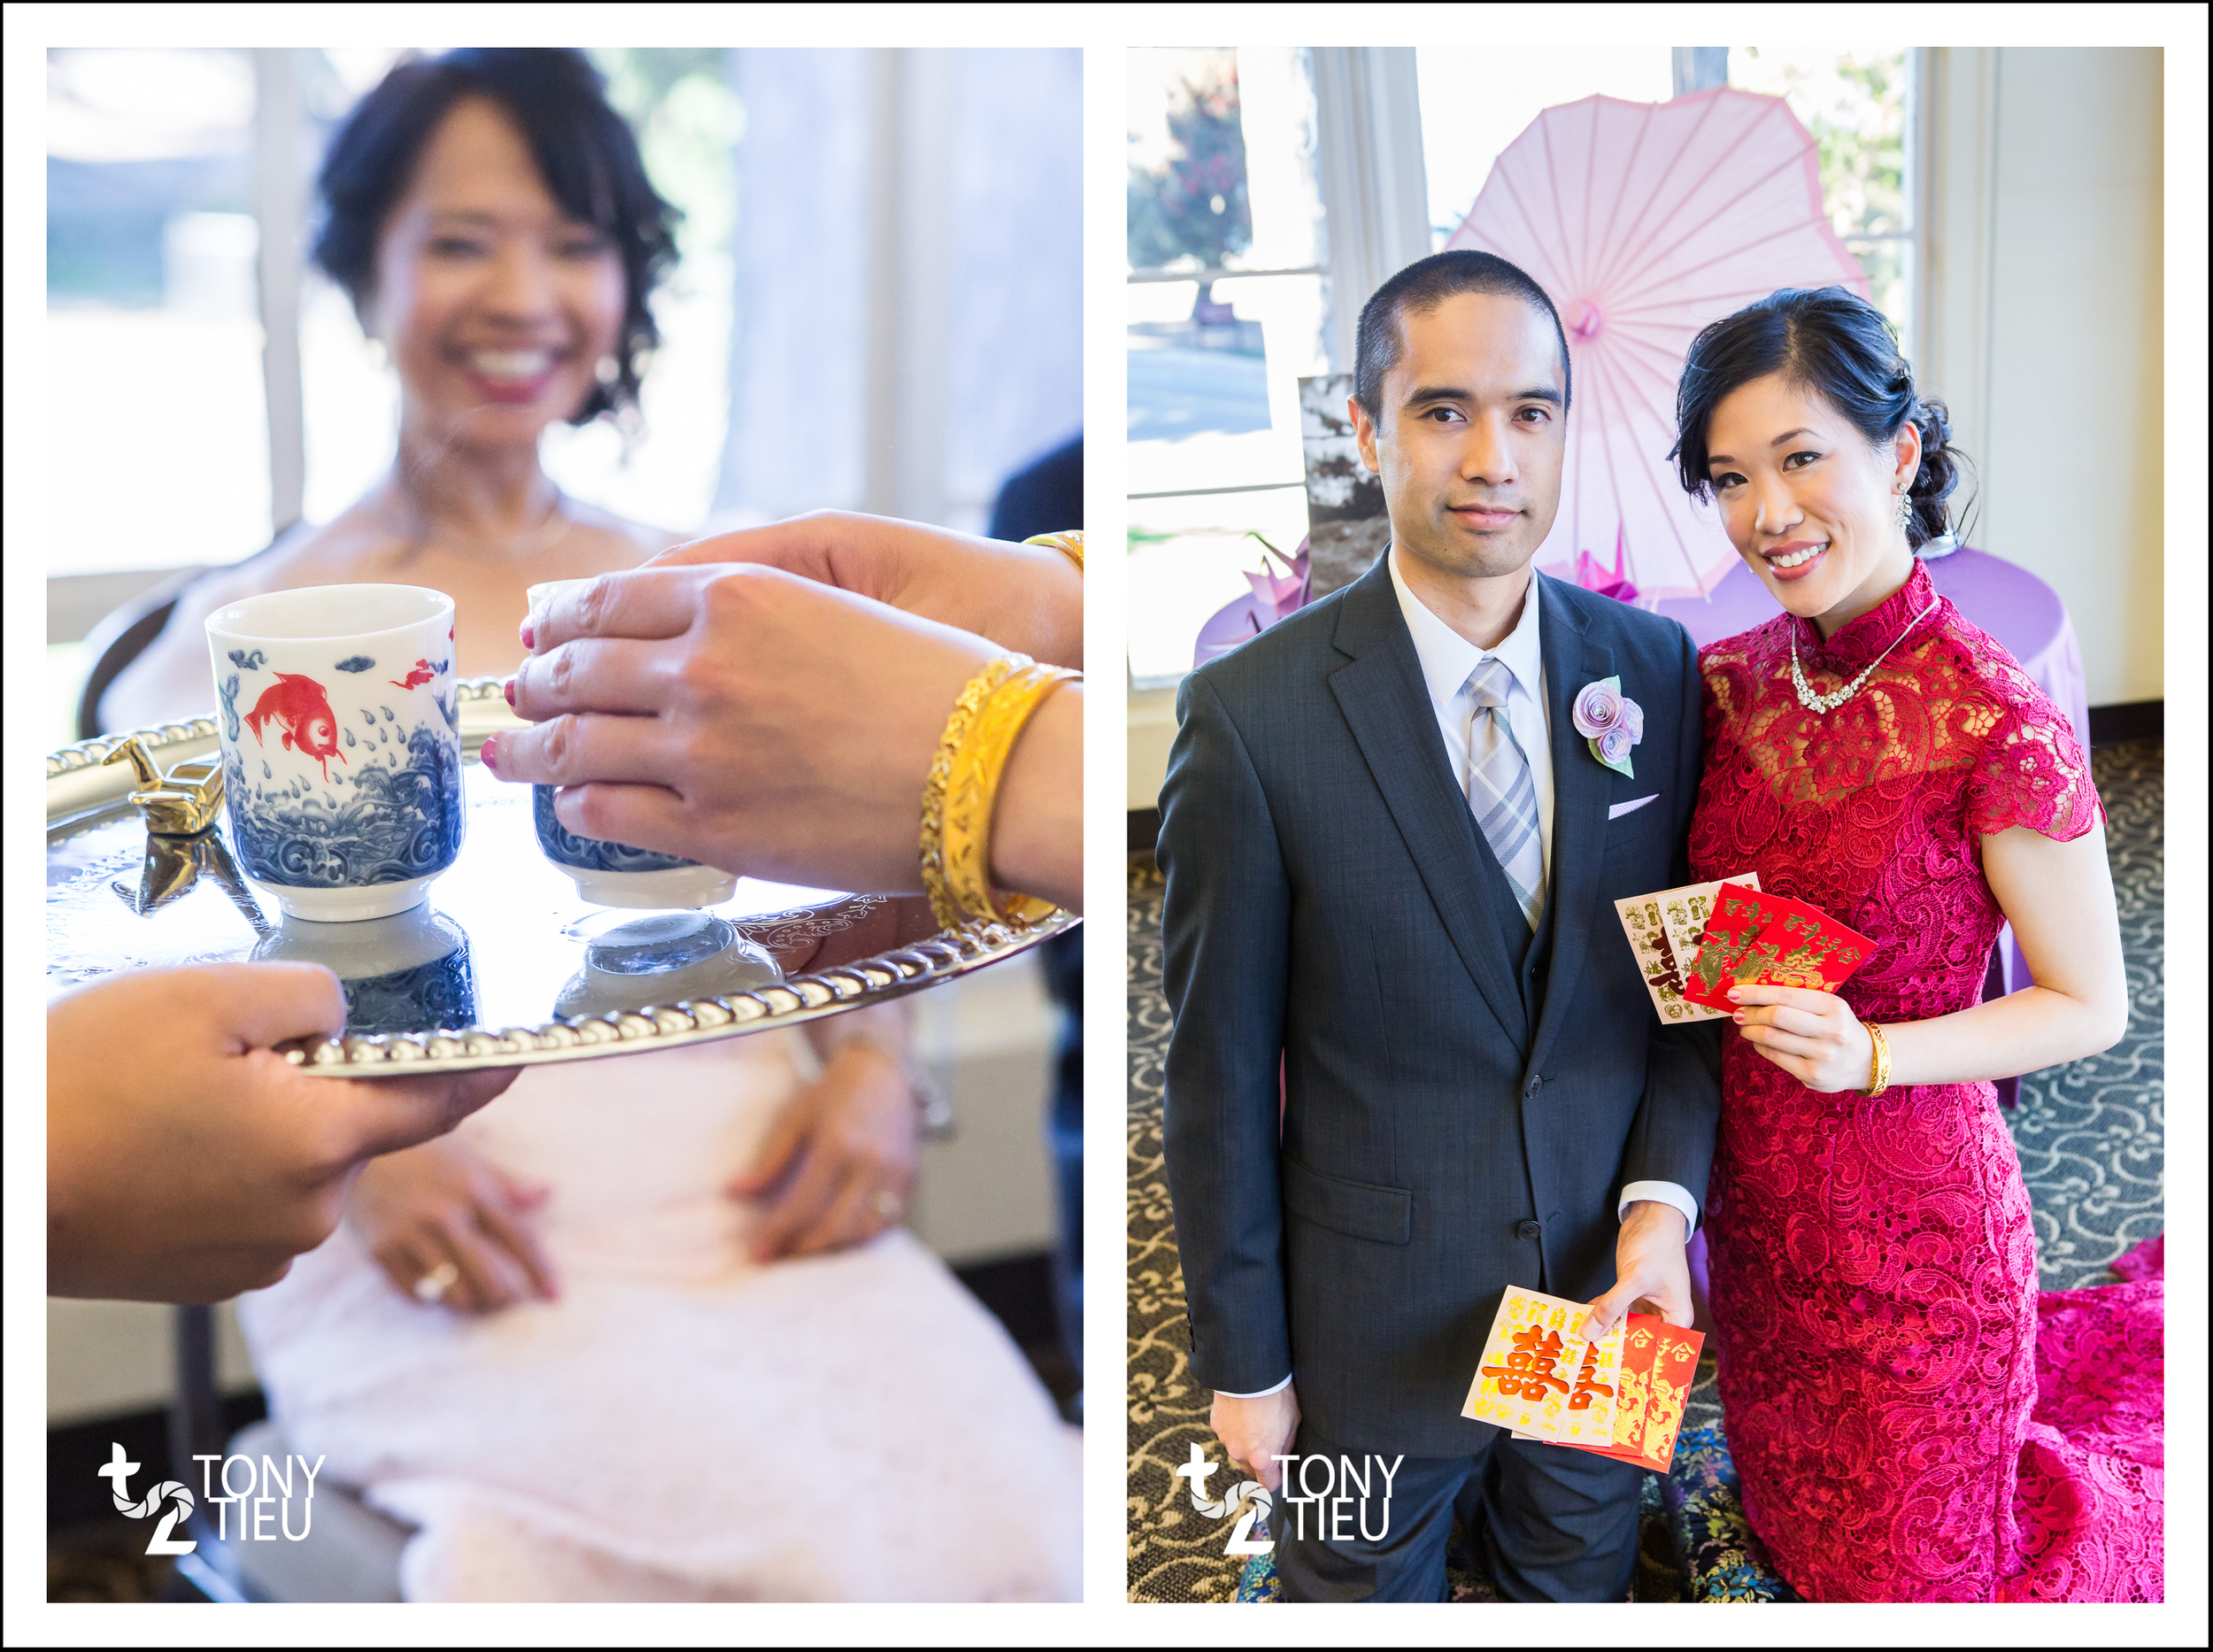 Tony_Tieu_Connie_Wedding_11